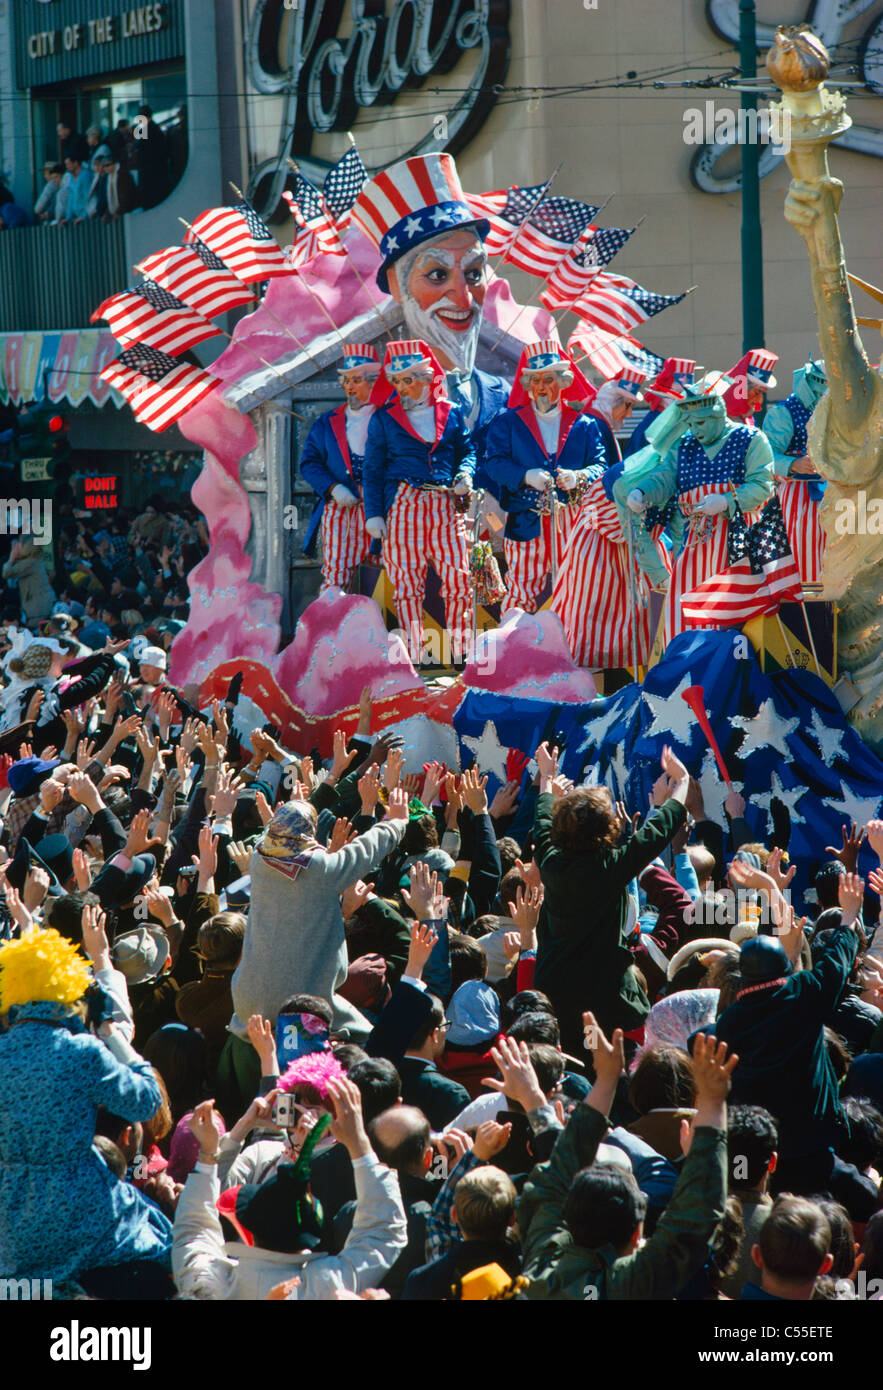 USA, Louisiana, New Orleans, Mardi Gras parade - Stock Image